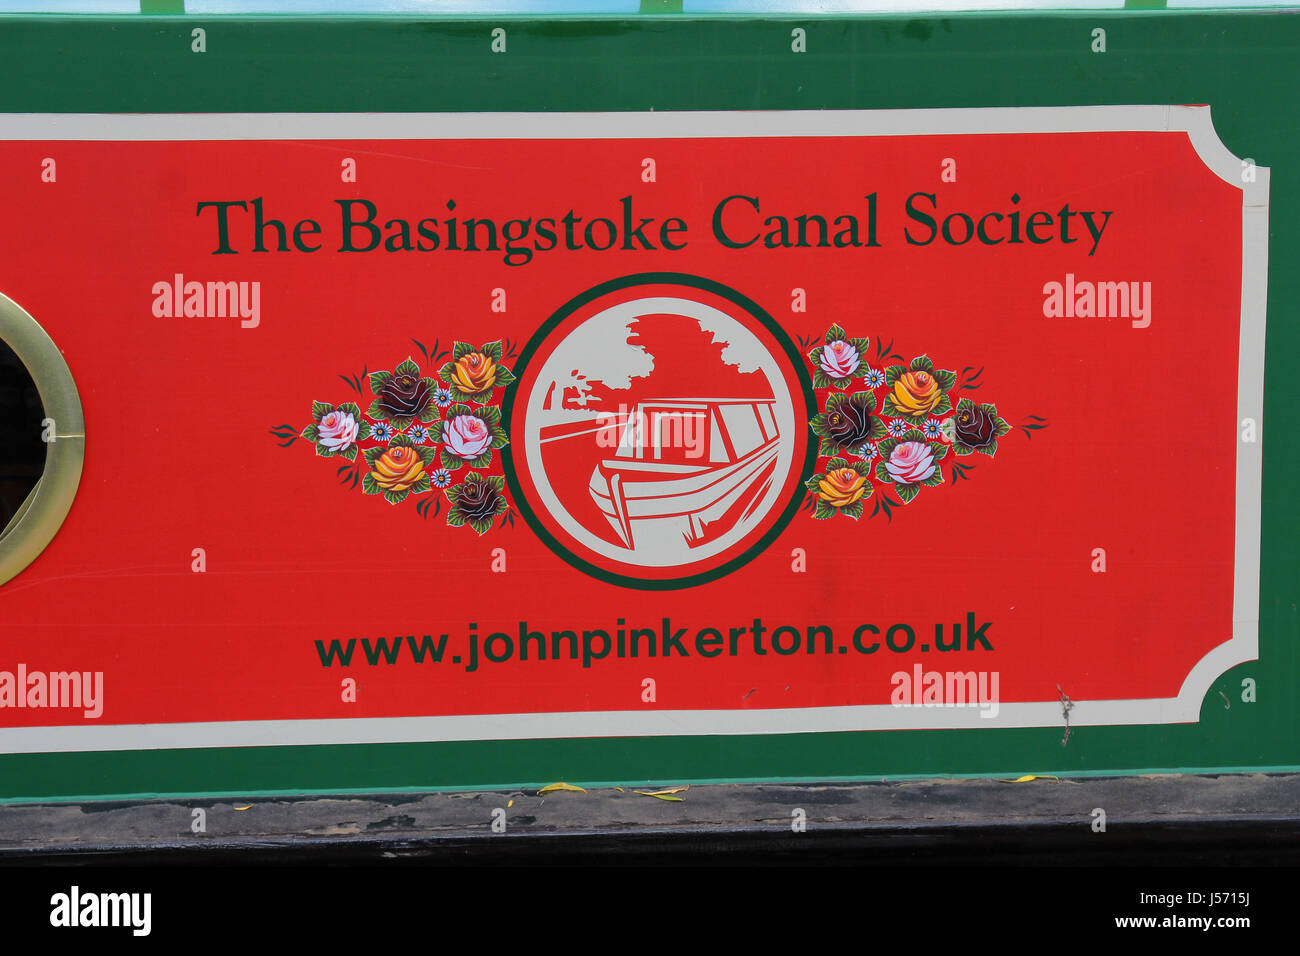 The Basingstoke Canal Society - Stock Image